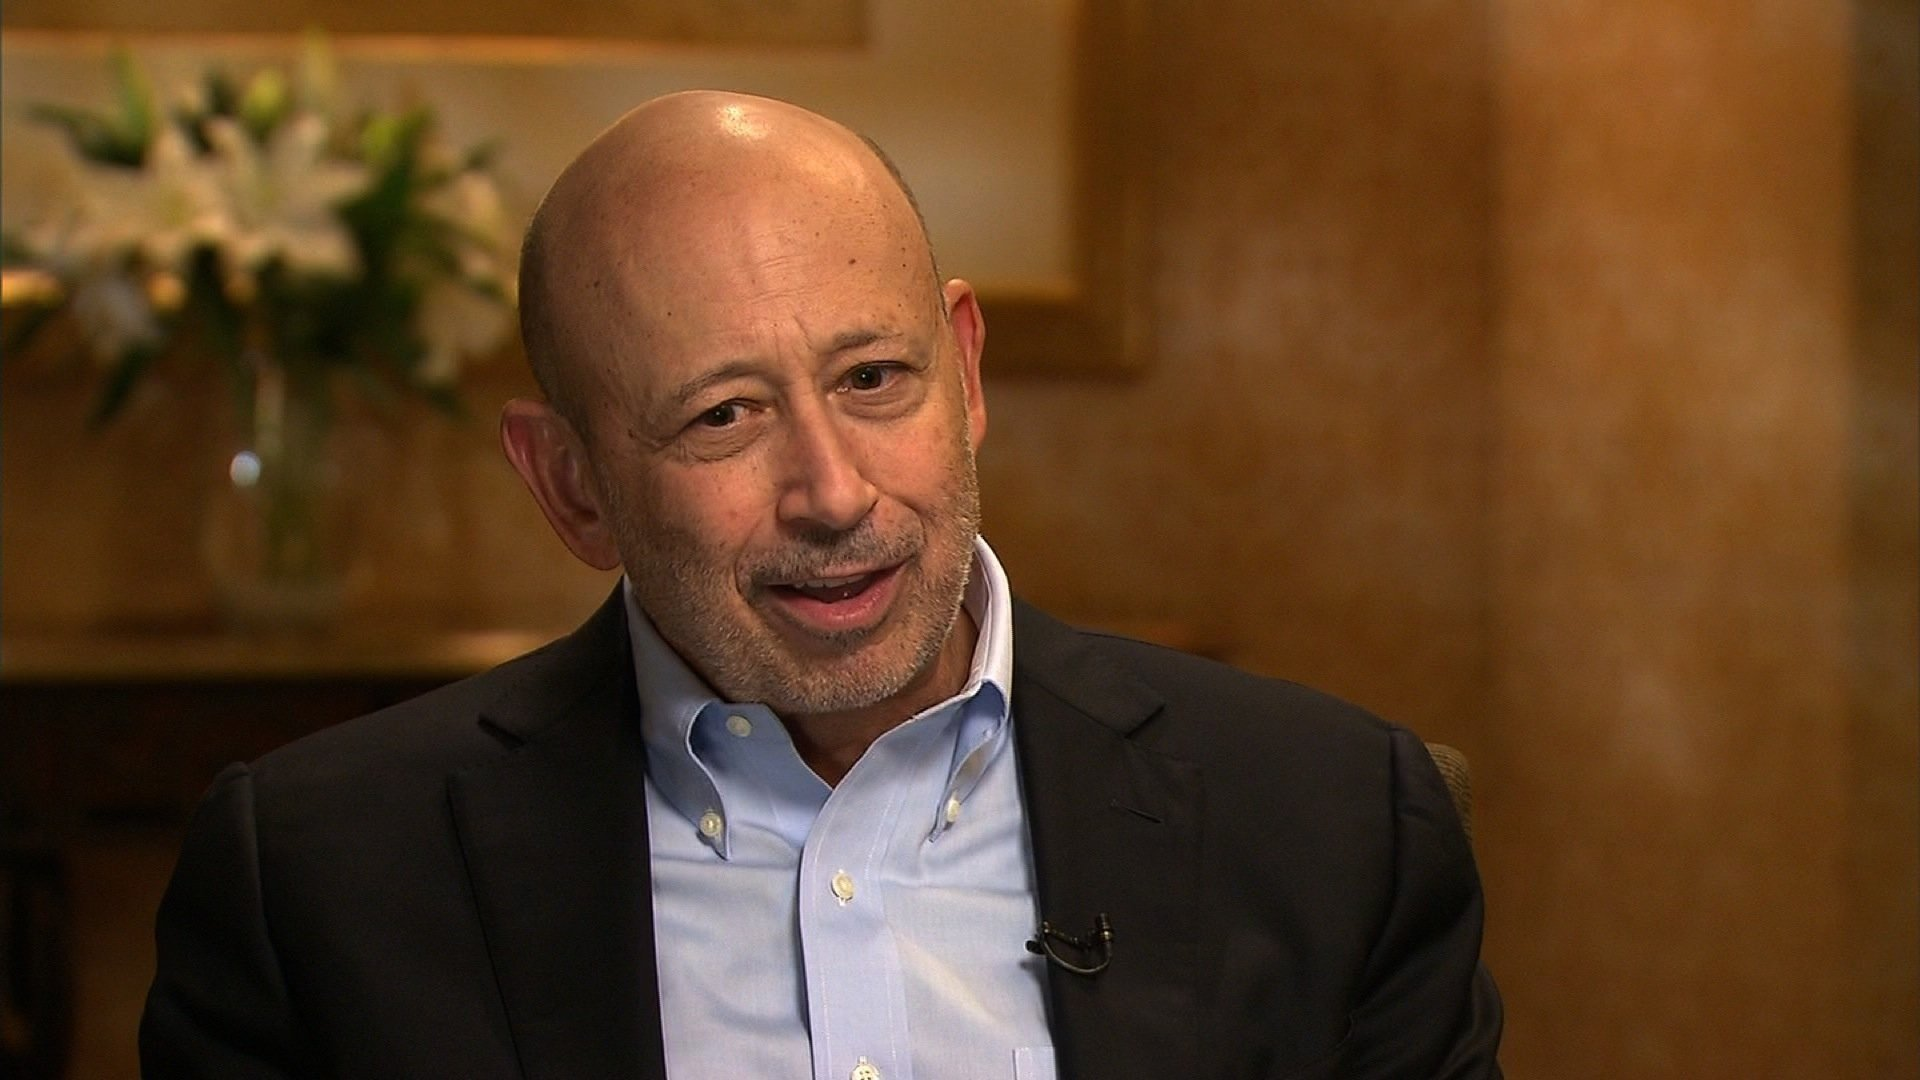 Lloyd Blankfein is reportedly planning to leave Goldman Sachs